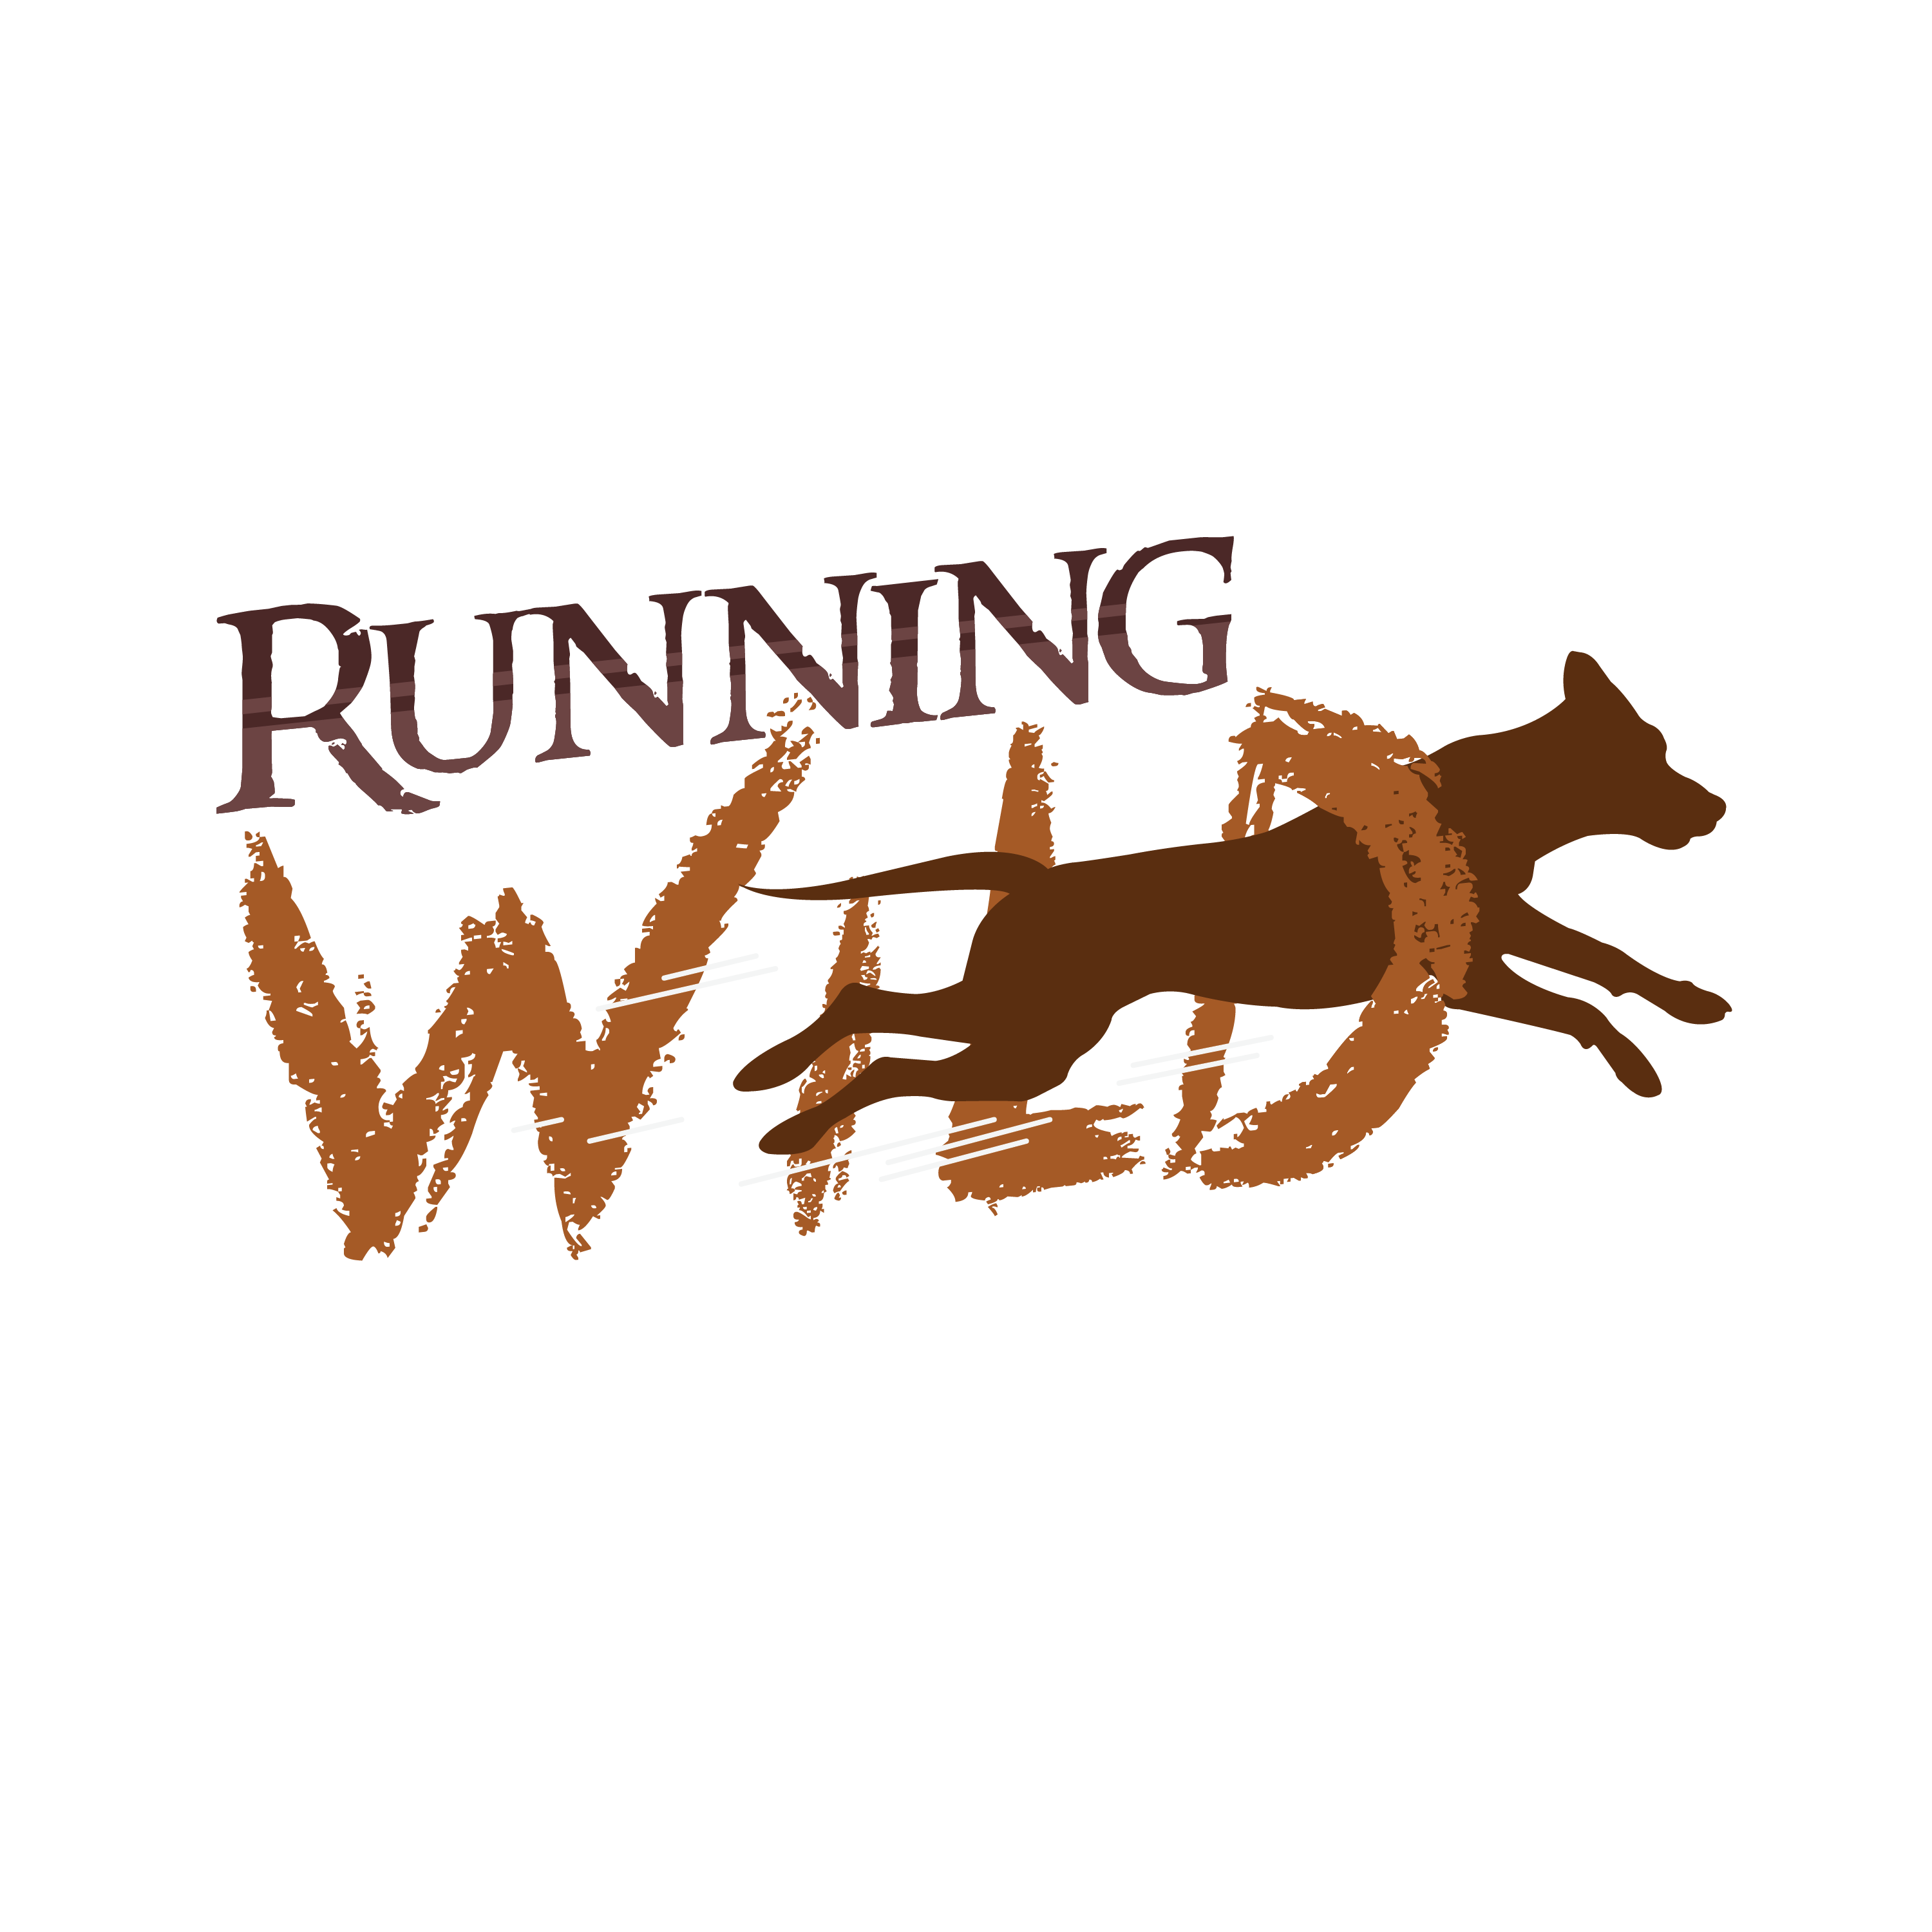 Taming the WILD needs a Running WILD t-shirt for our Dog Agility club